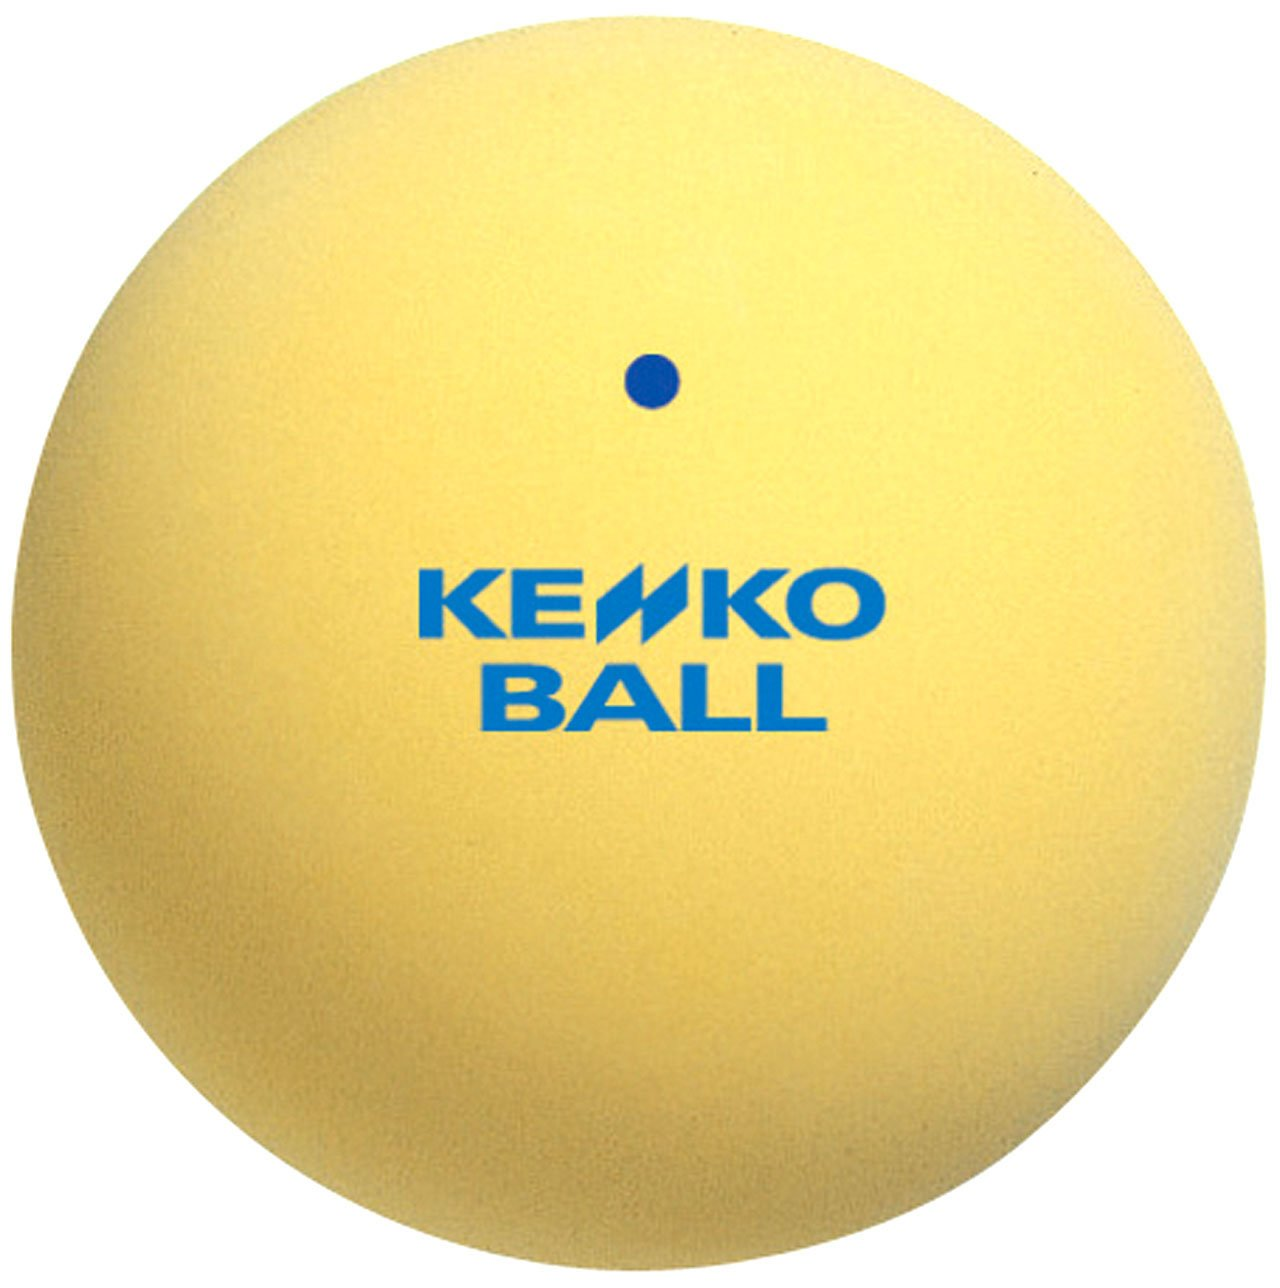 Kenko Markwort Soft Tennis Ball Starter Set (Yellow, 4-Piece) NKST300